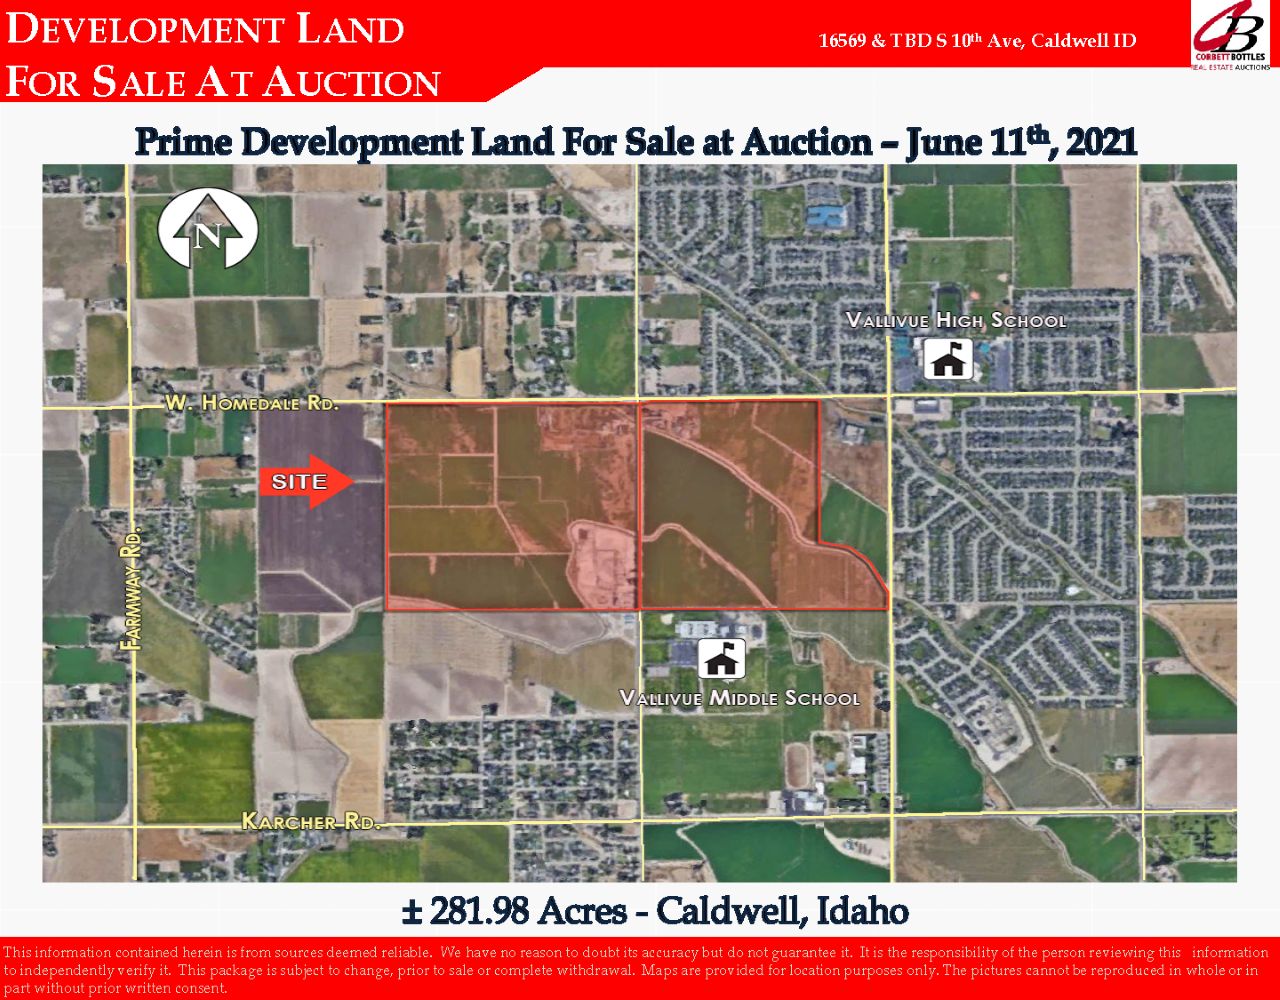 thumbnail_Map of Land for Sale at Auction in Caldwell.png